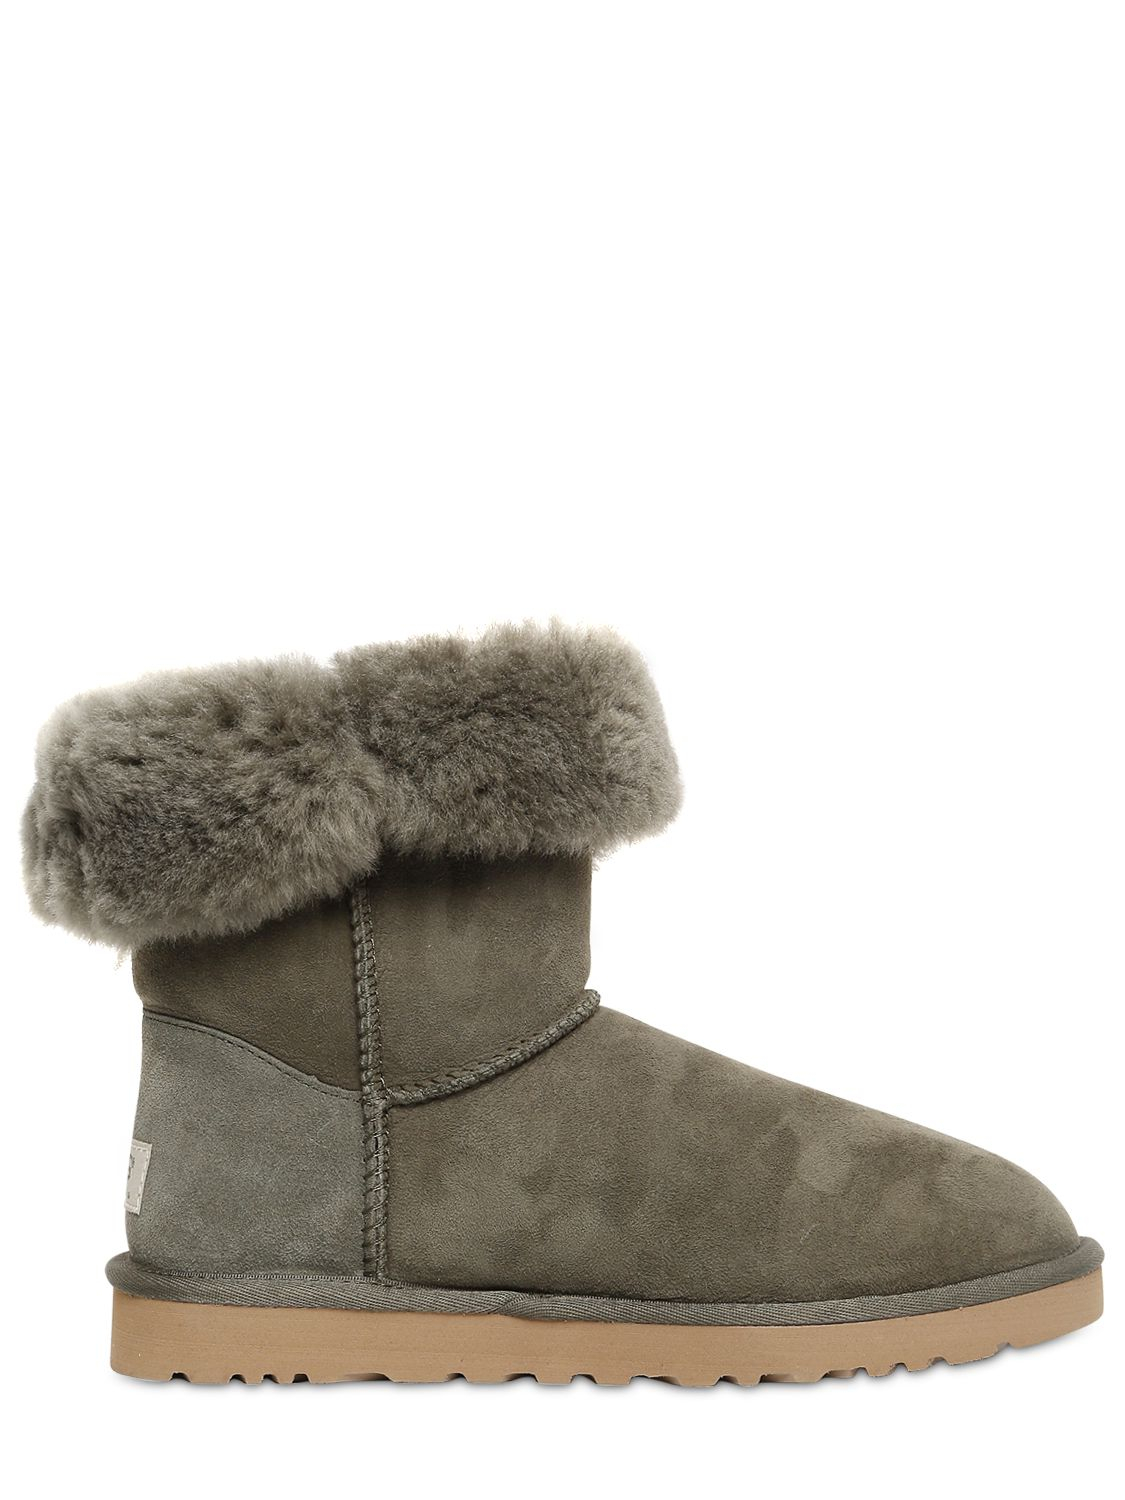 179919dadc5 Ugg Classic Mini Forest Night